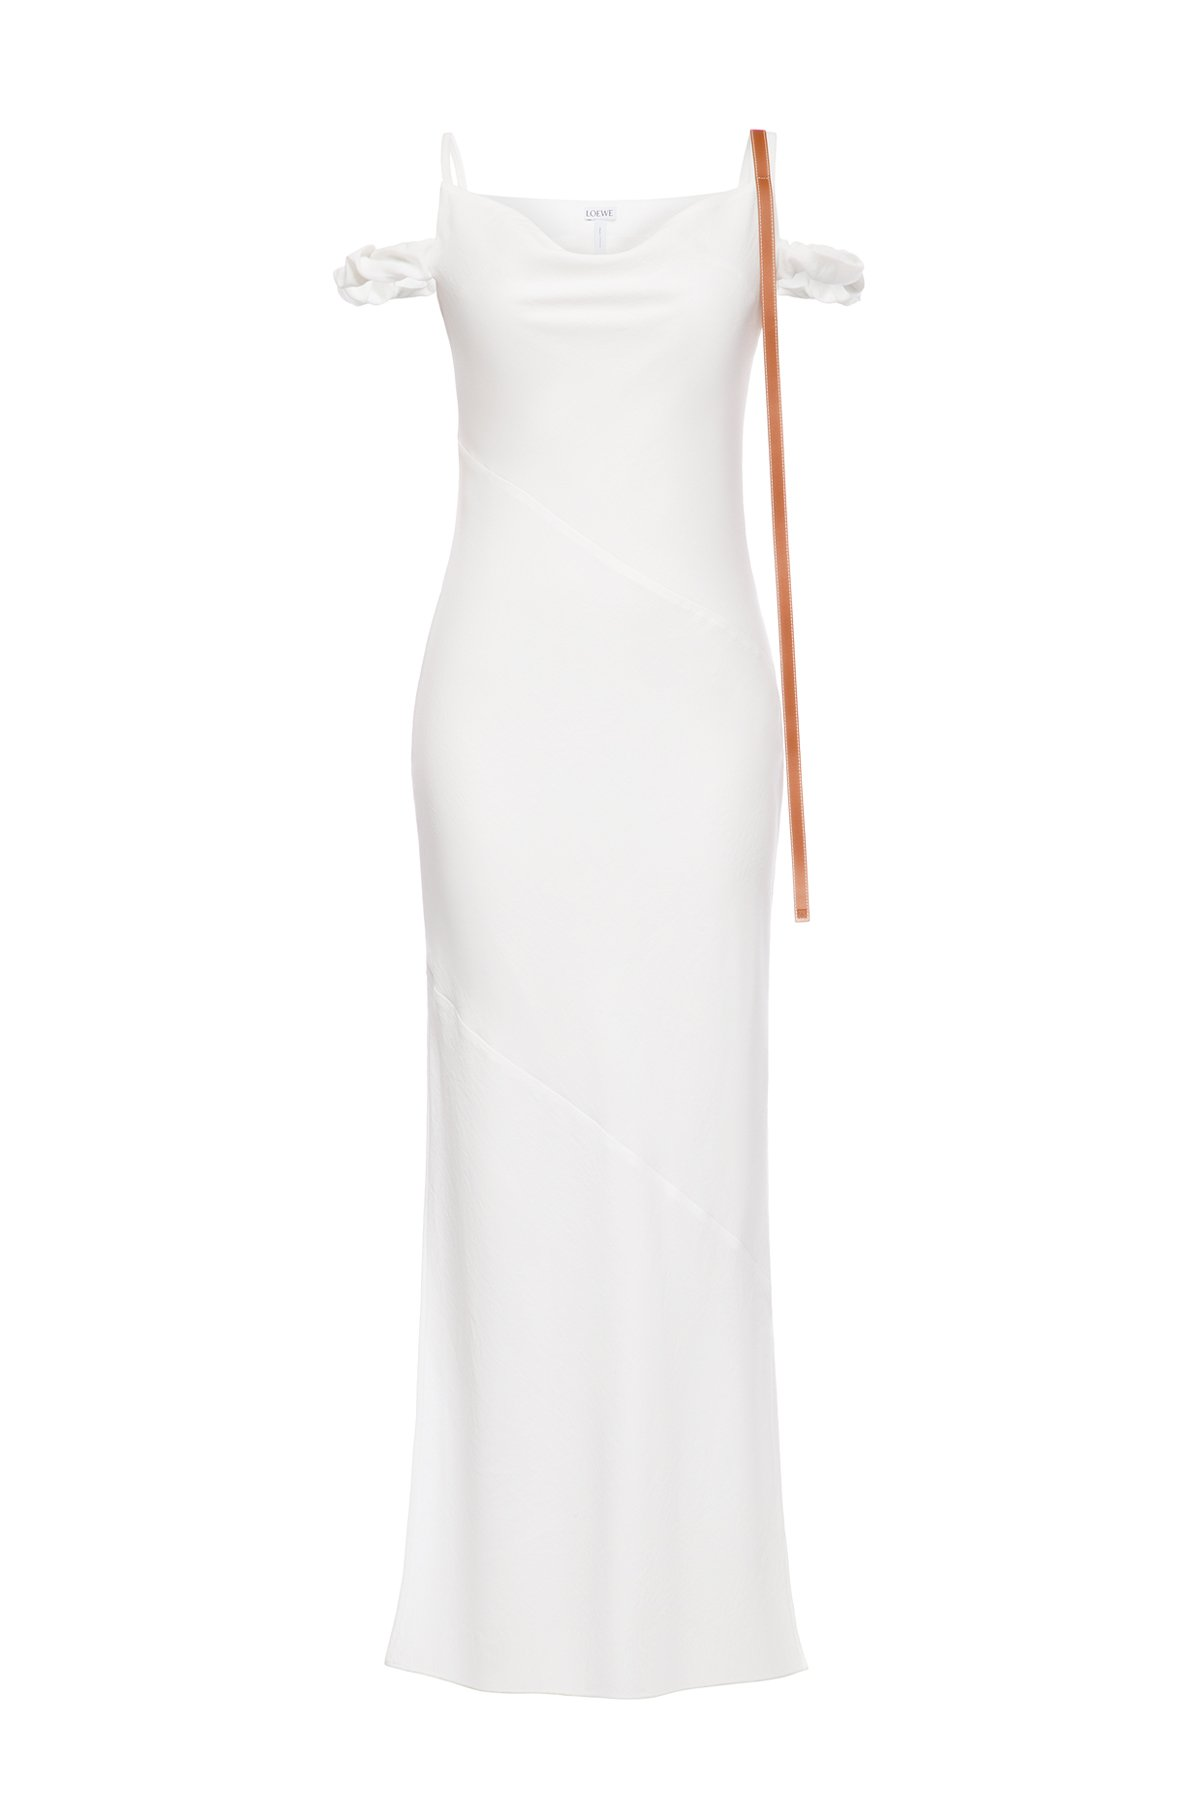 LOEWE Strappy Dress Leather Strap White front